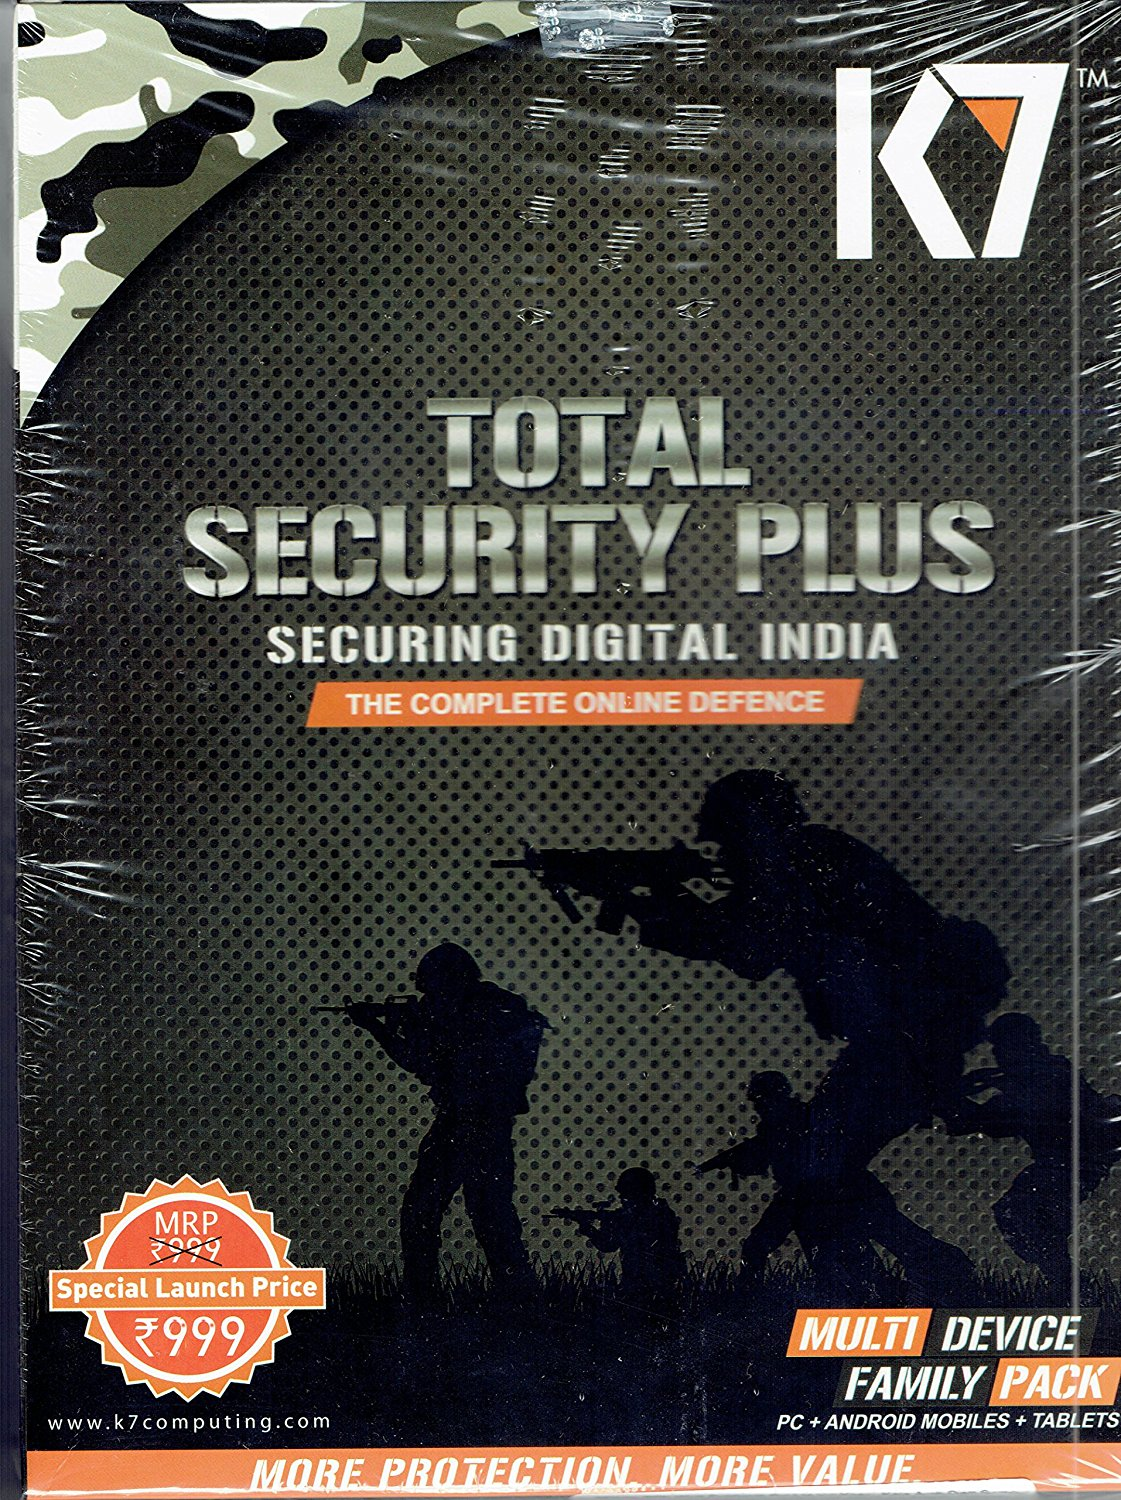 K7 Total Security Plus Family Pack Multi Device PC+Android Mobile+Tablets 1 Year Full Virus Protection.